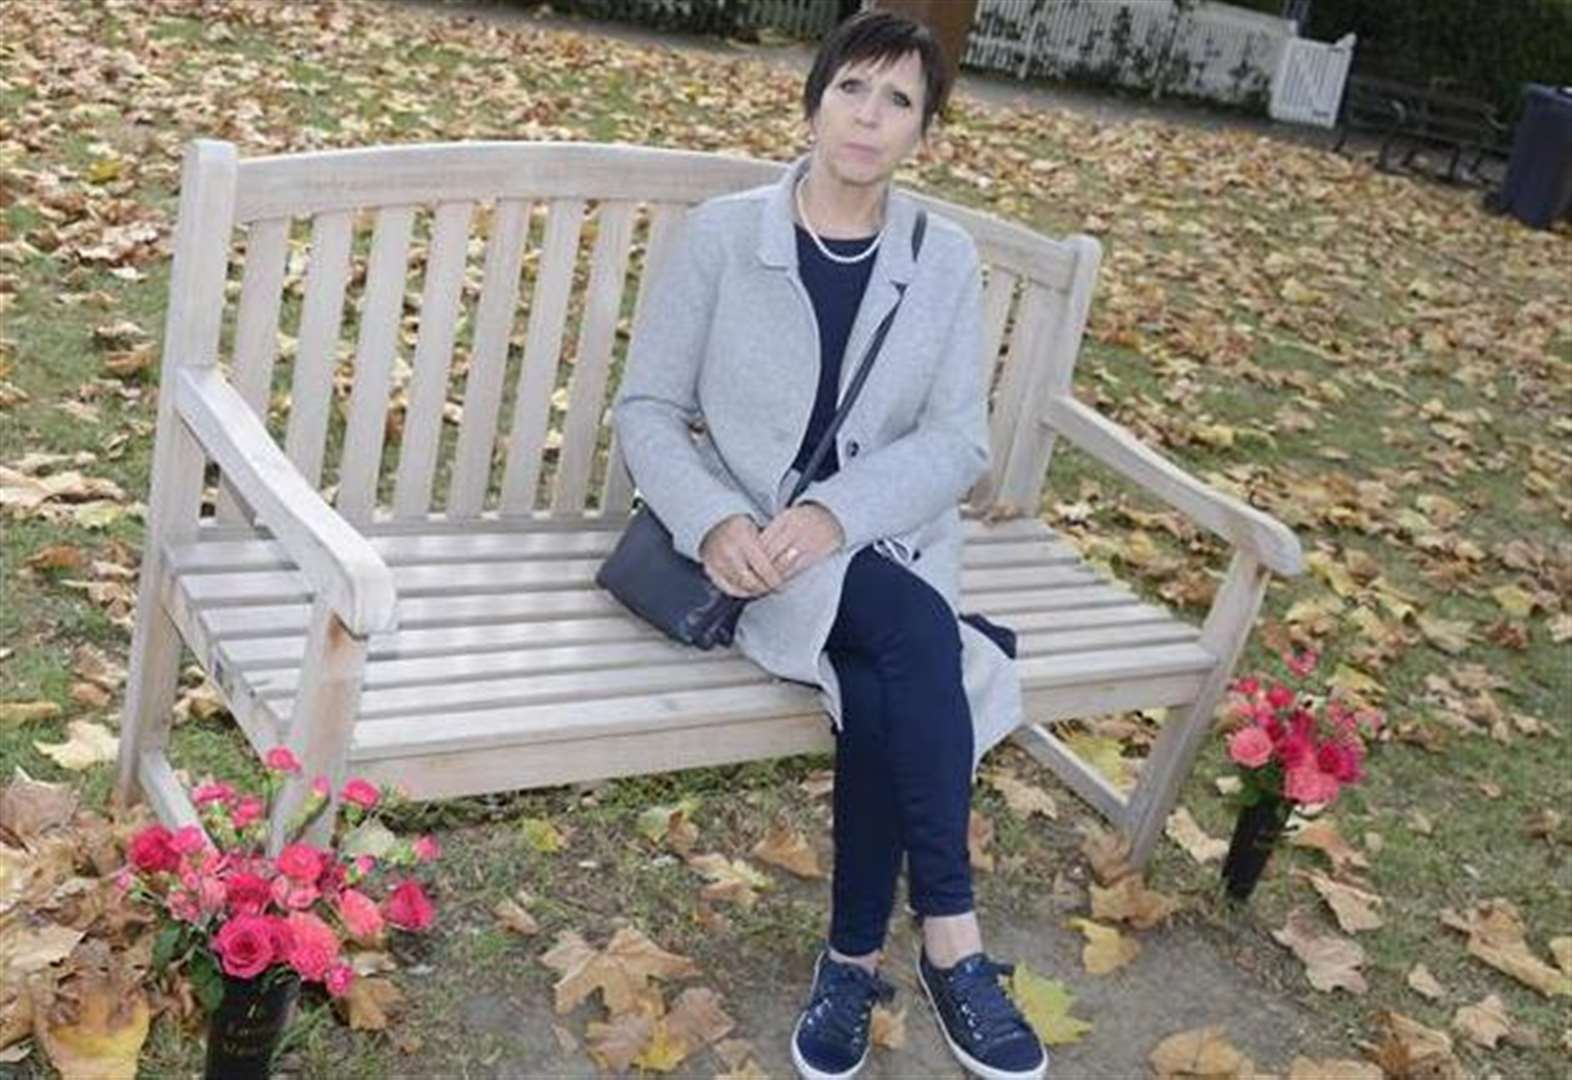 Widow to defy bench flowers rule